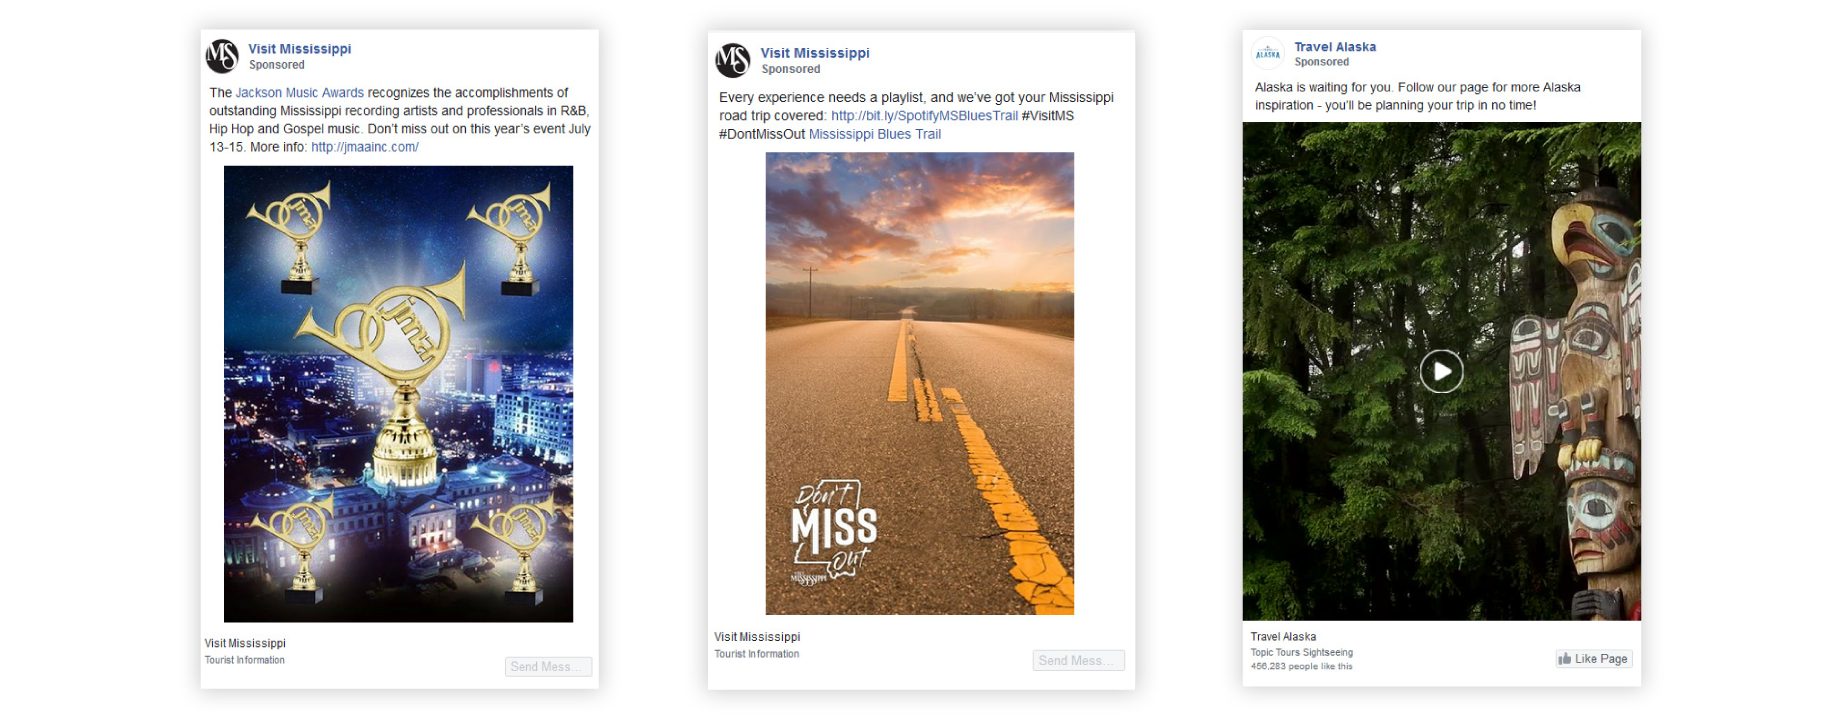 Facebook ad examples from destination marketing organizations